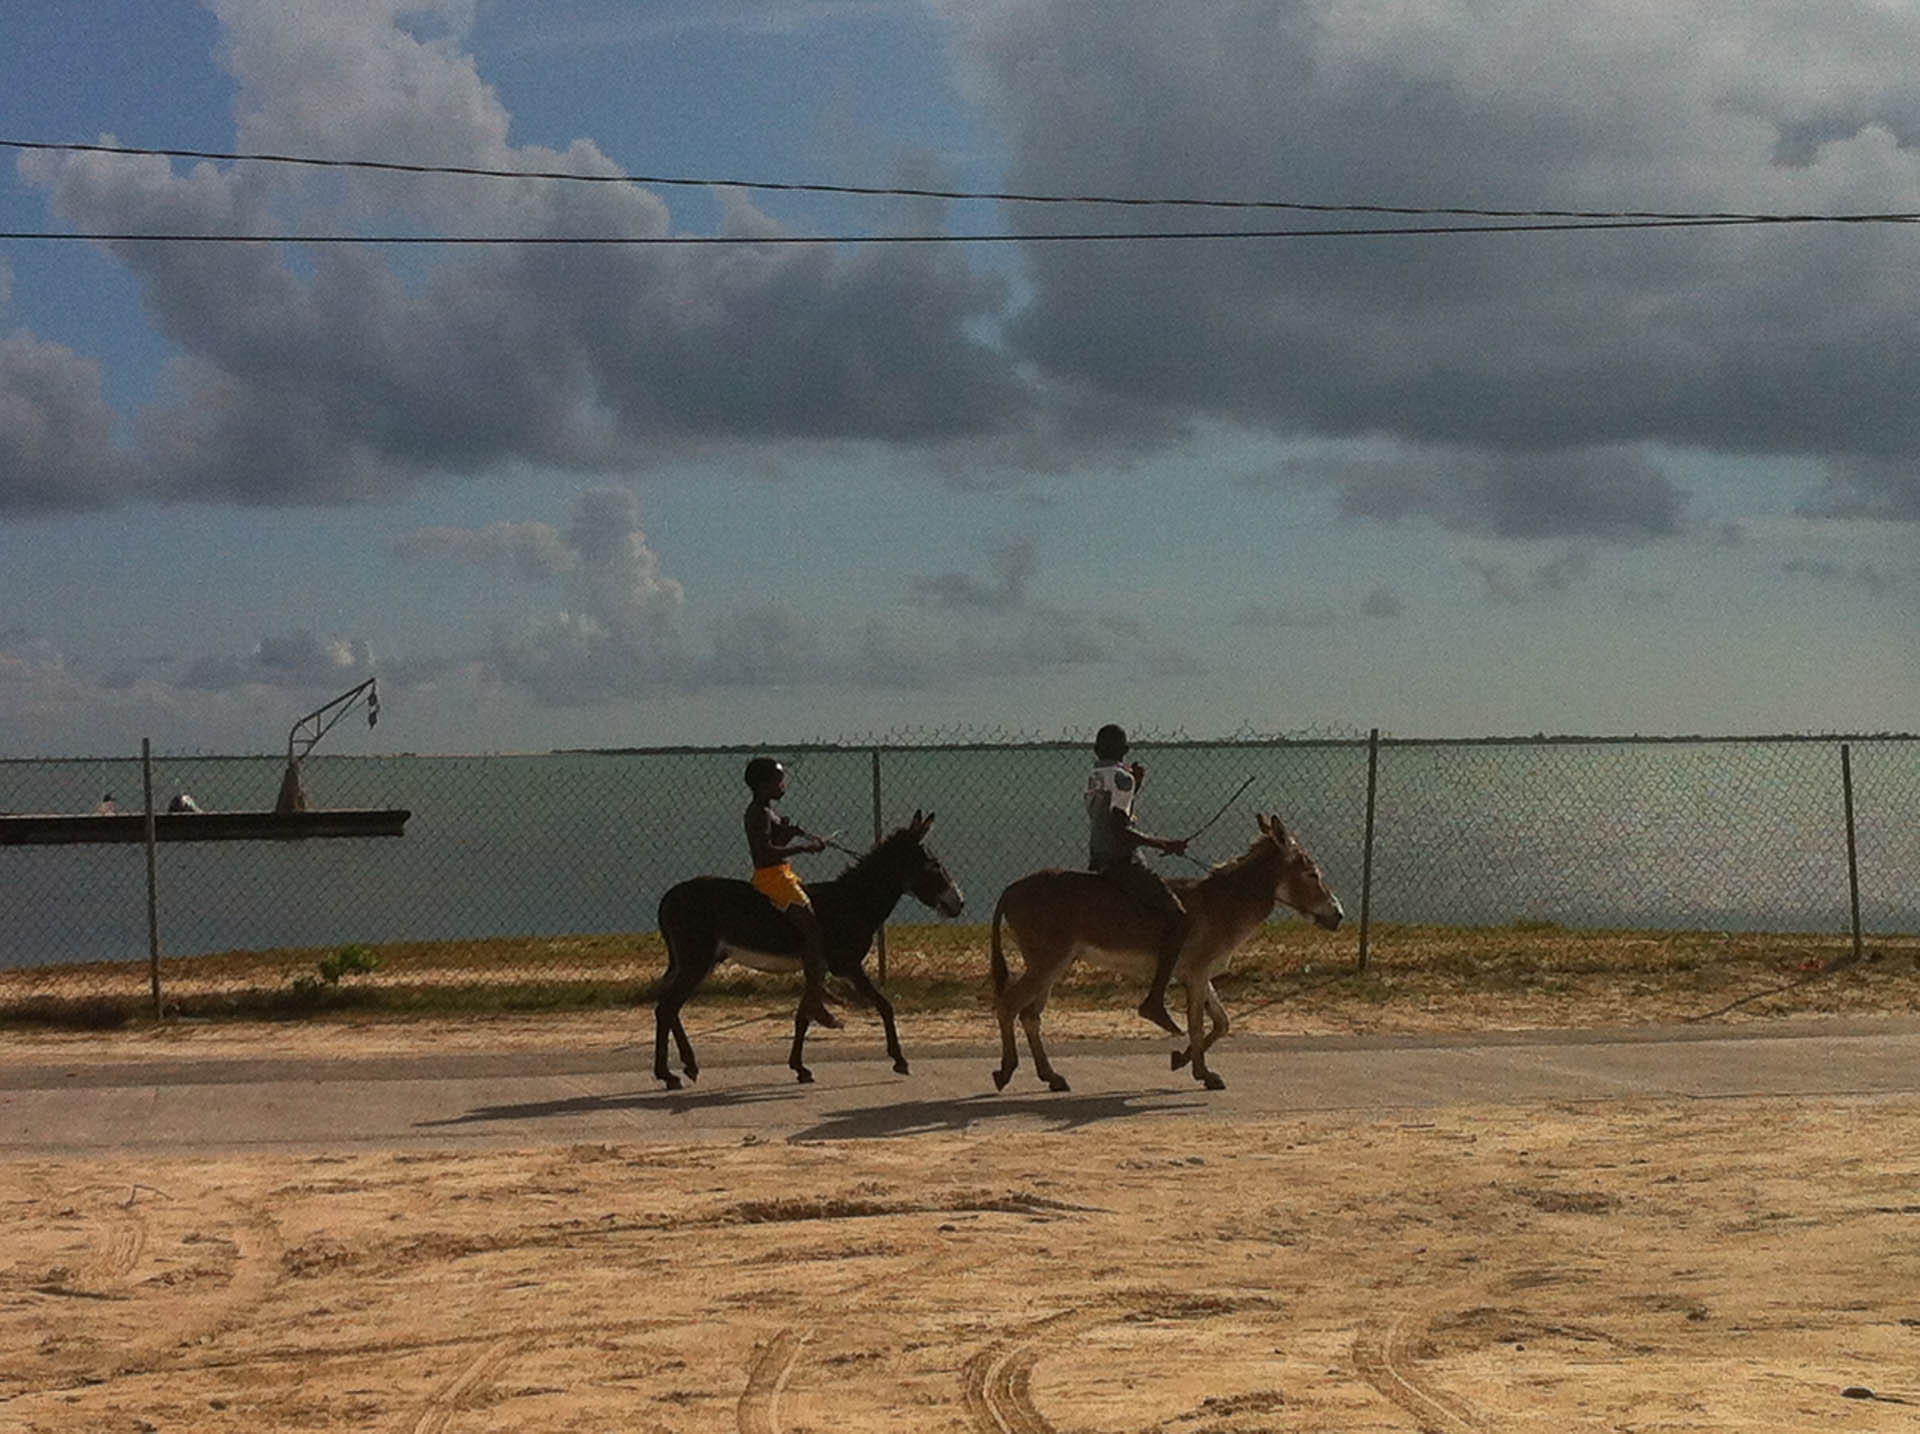 Boys on Donkeys